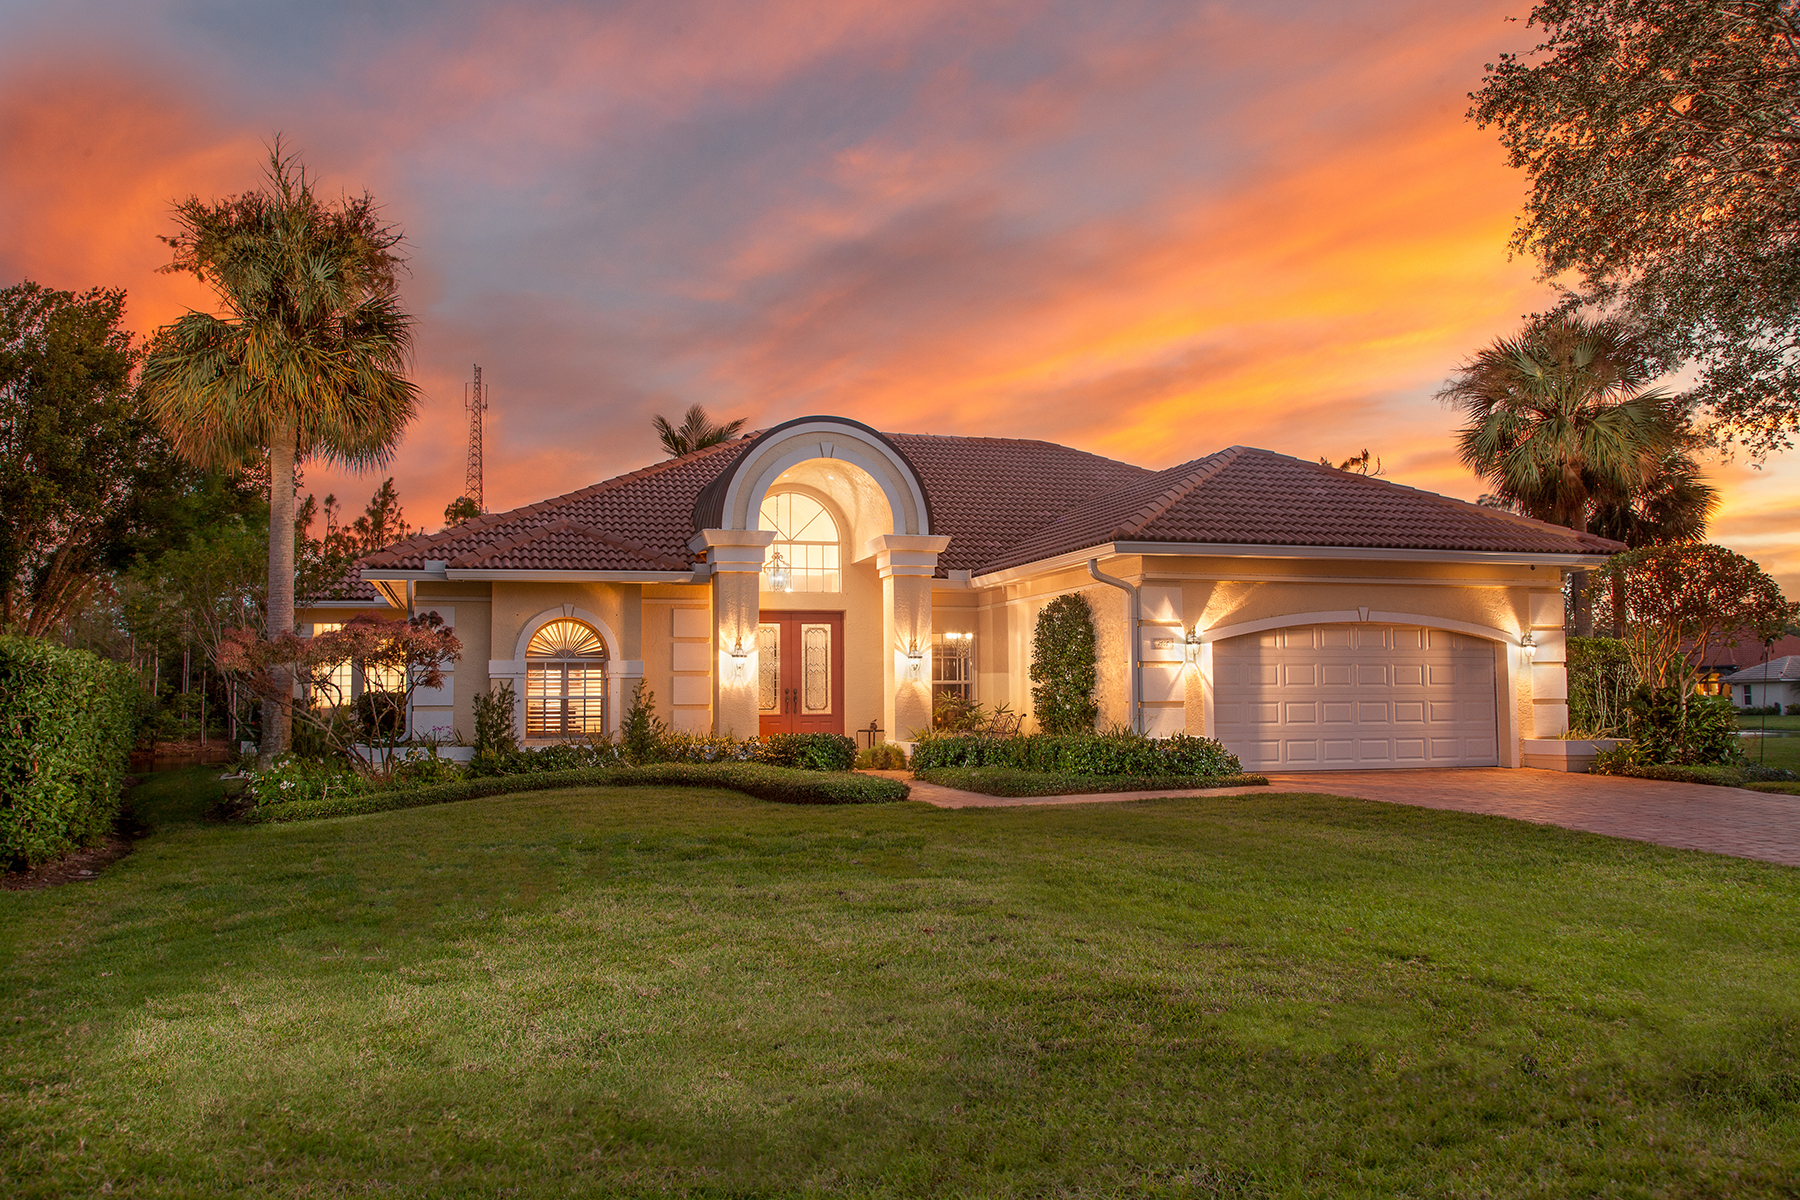 Single Family Home for Sale at CROSSINGS - MILL RUN 1908 Manchester Cir, Naples, Florida, 34109 United States